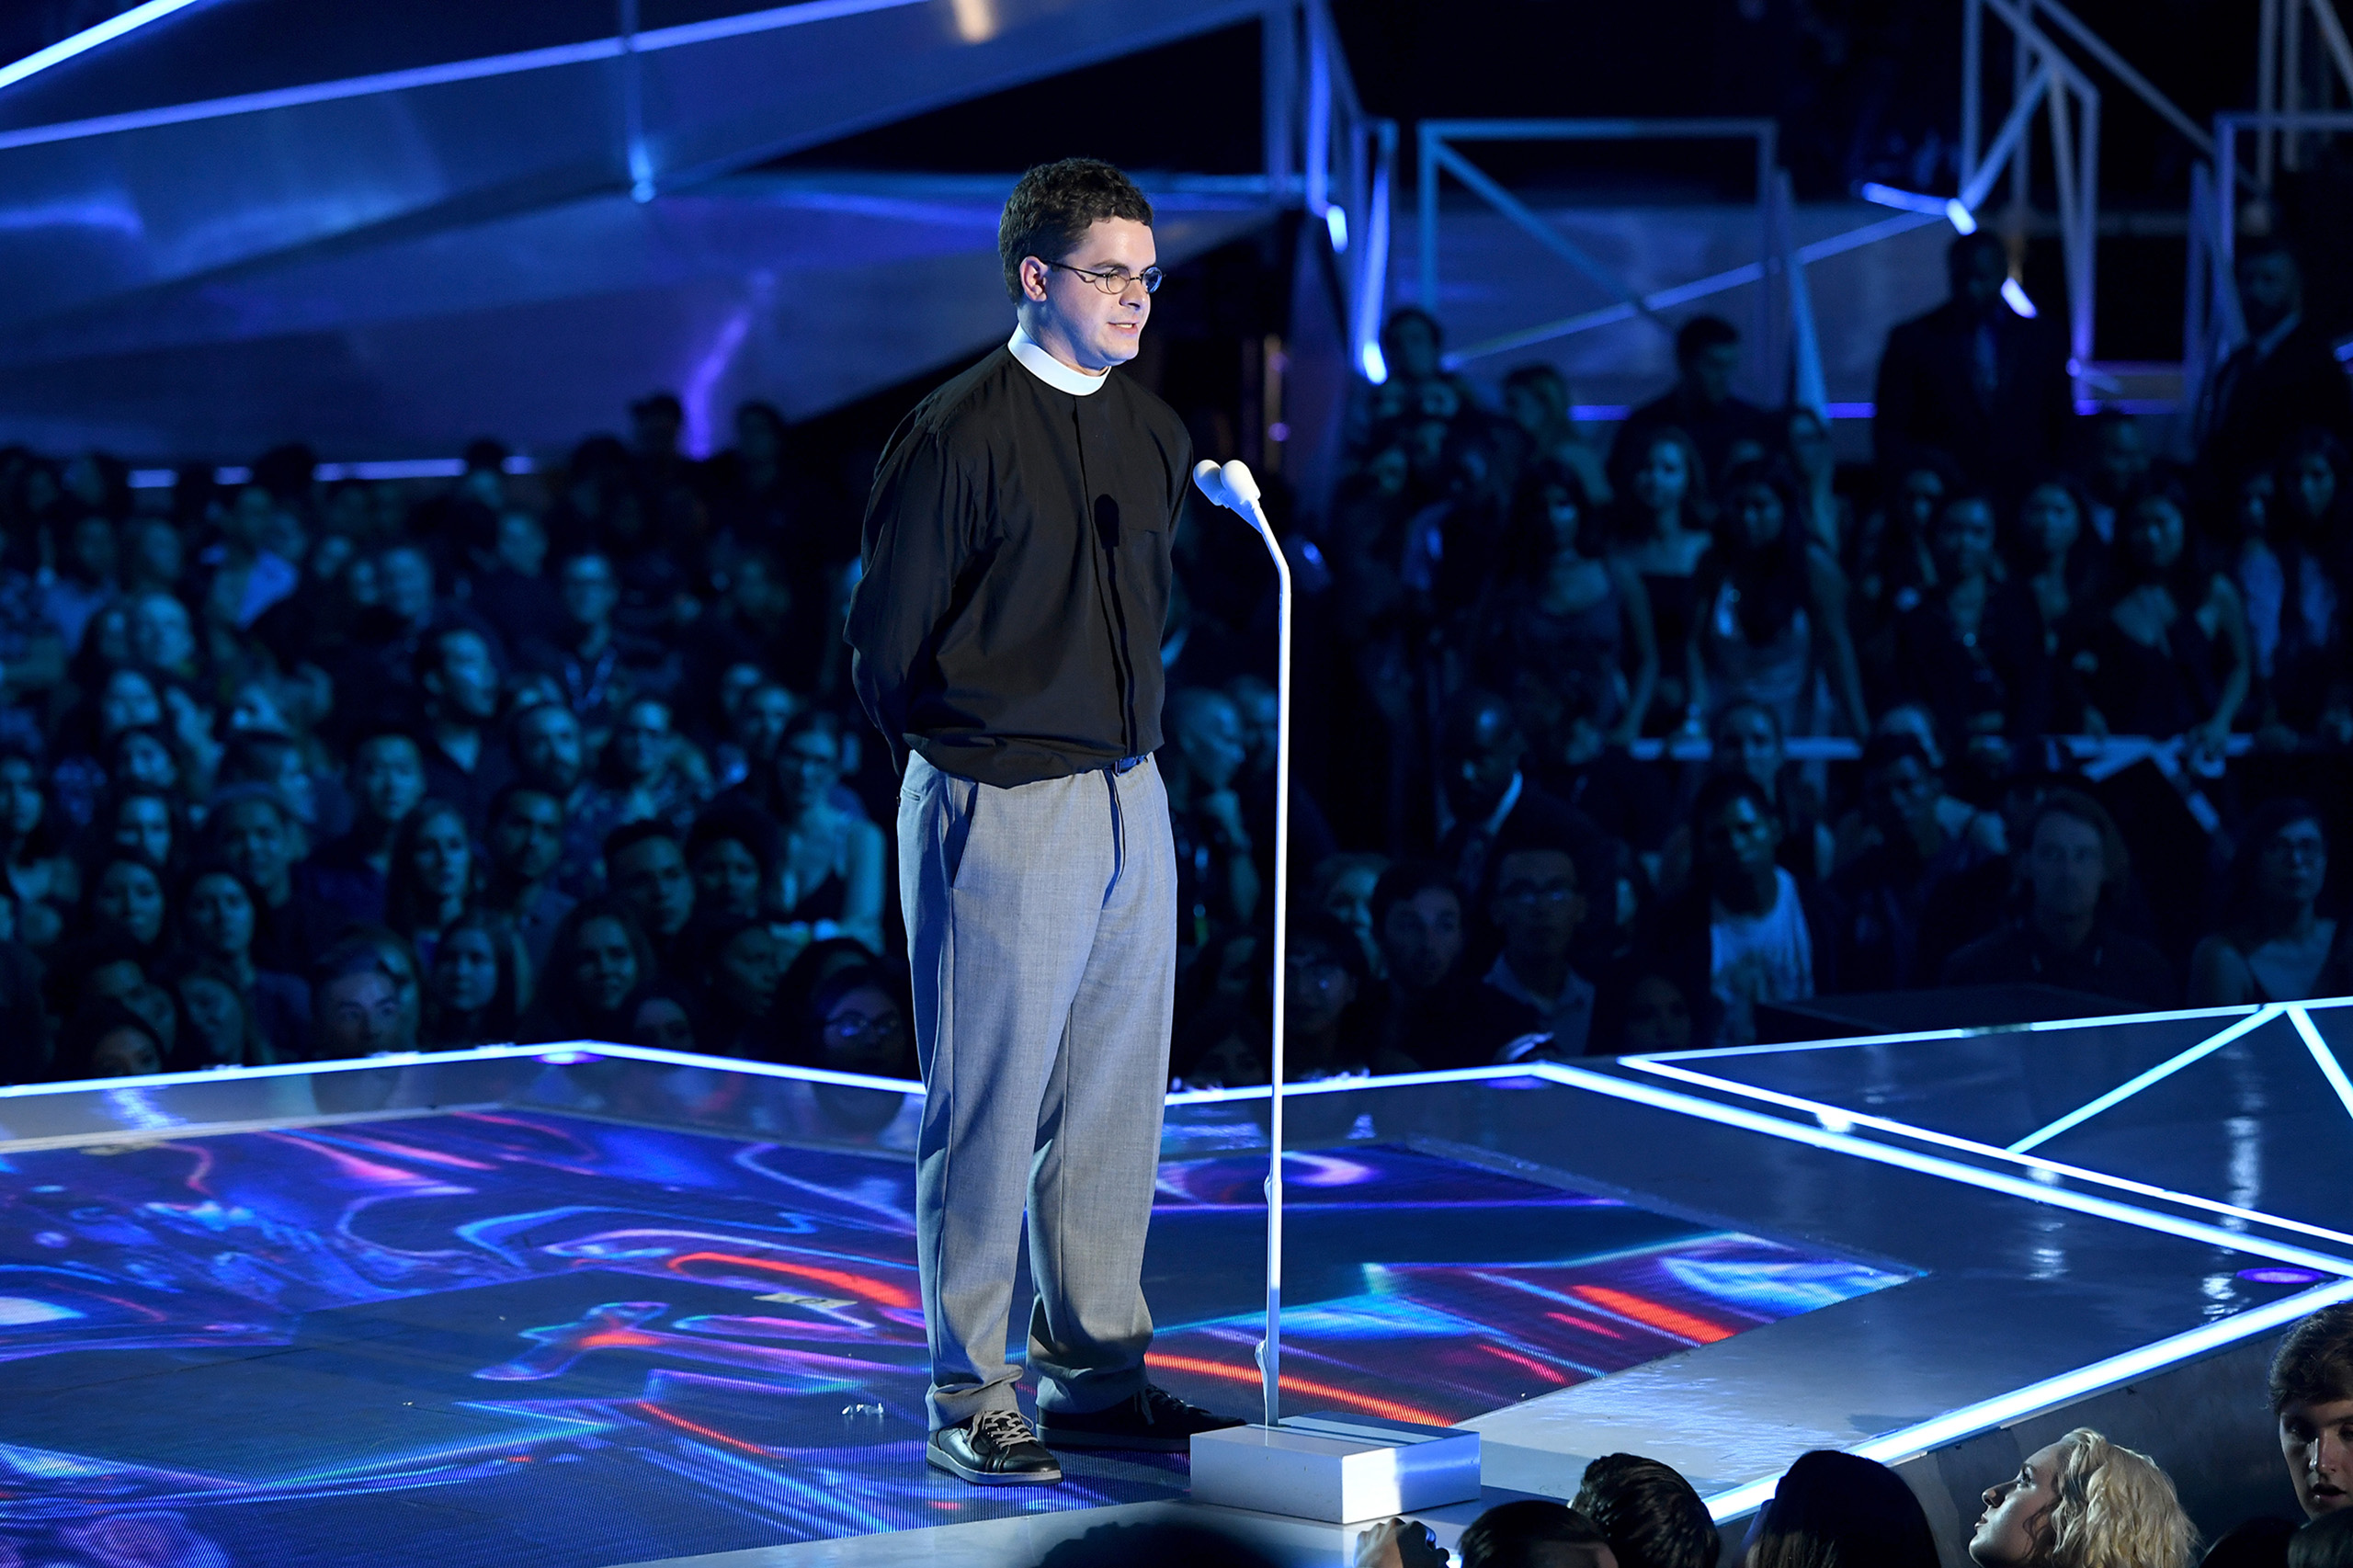 Robert Wright Lee IV speaks onstage during the 2017 MTV Video Music Awards at The Forum on August 27, 2017 in Inglewood, California.